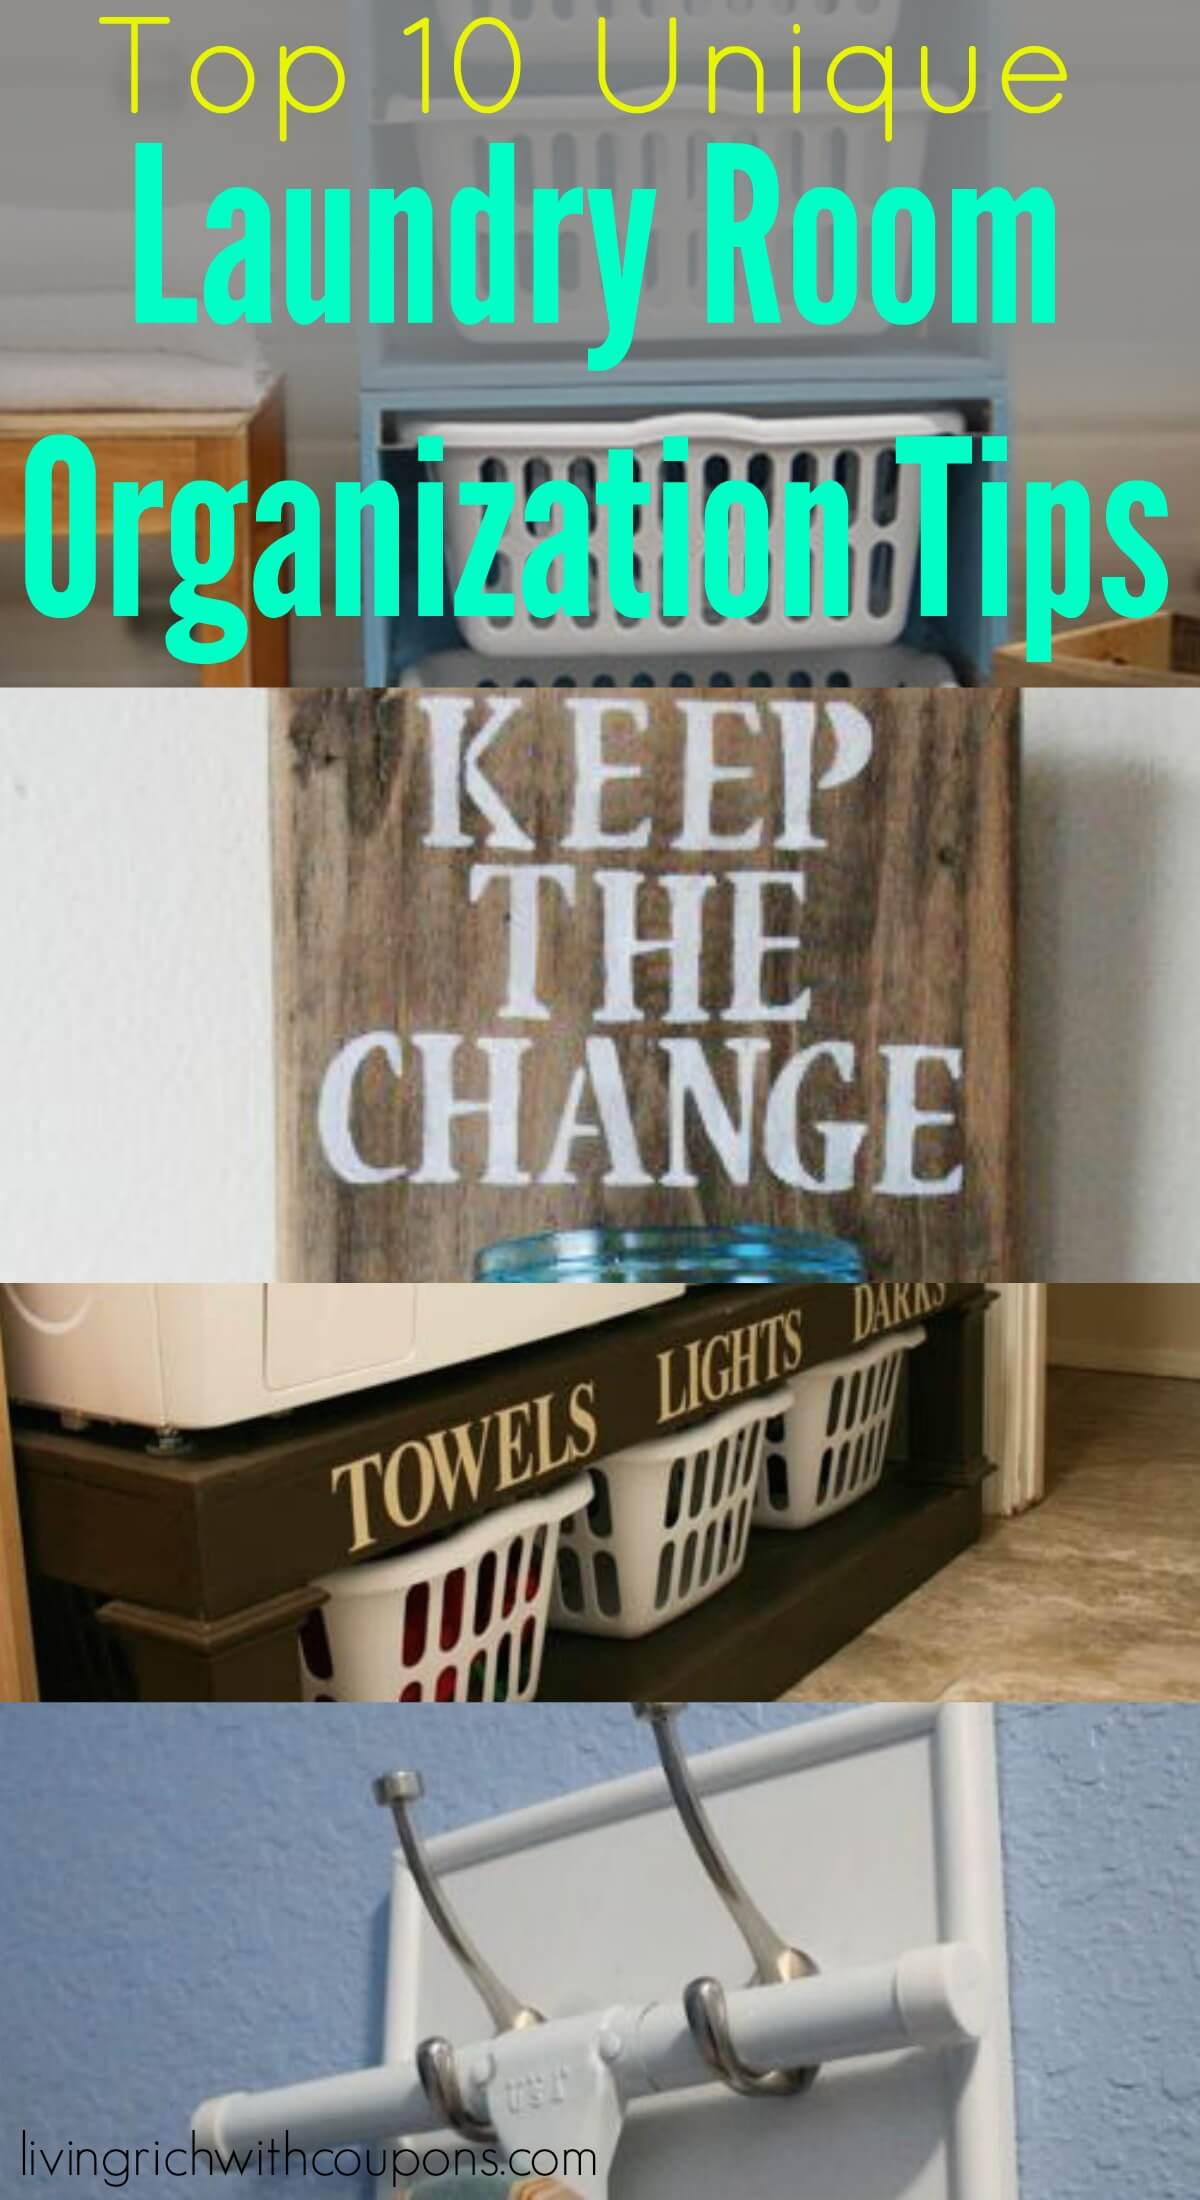 10 laundry room organization tips2